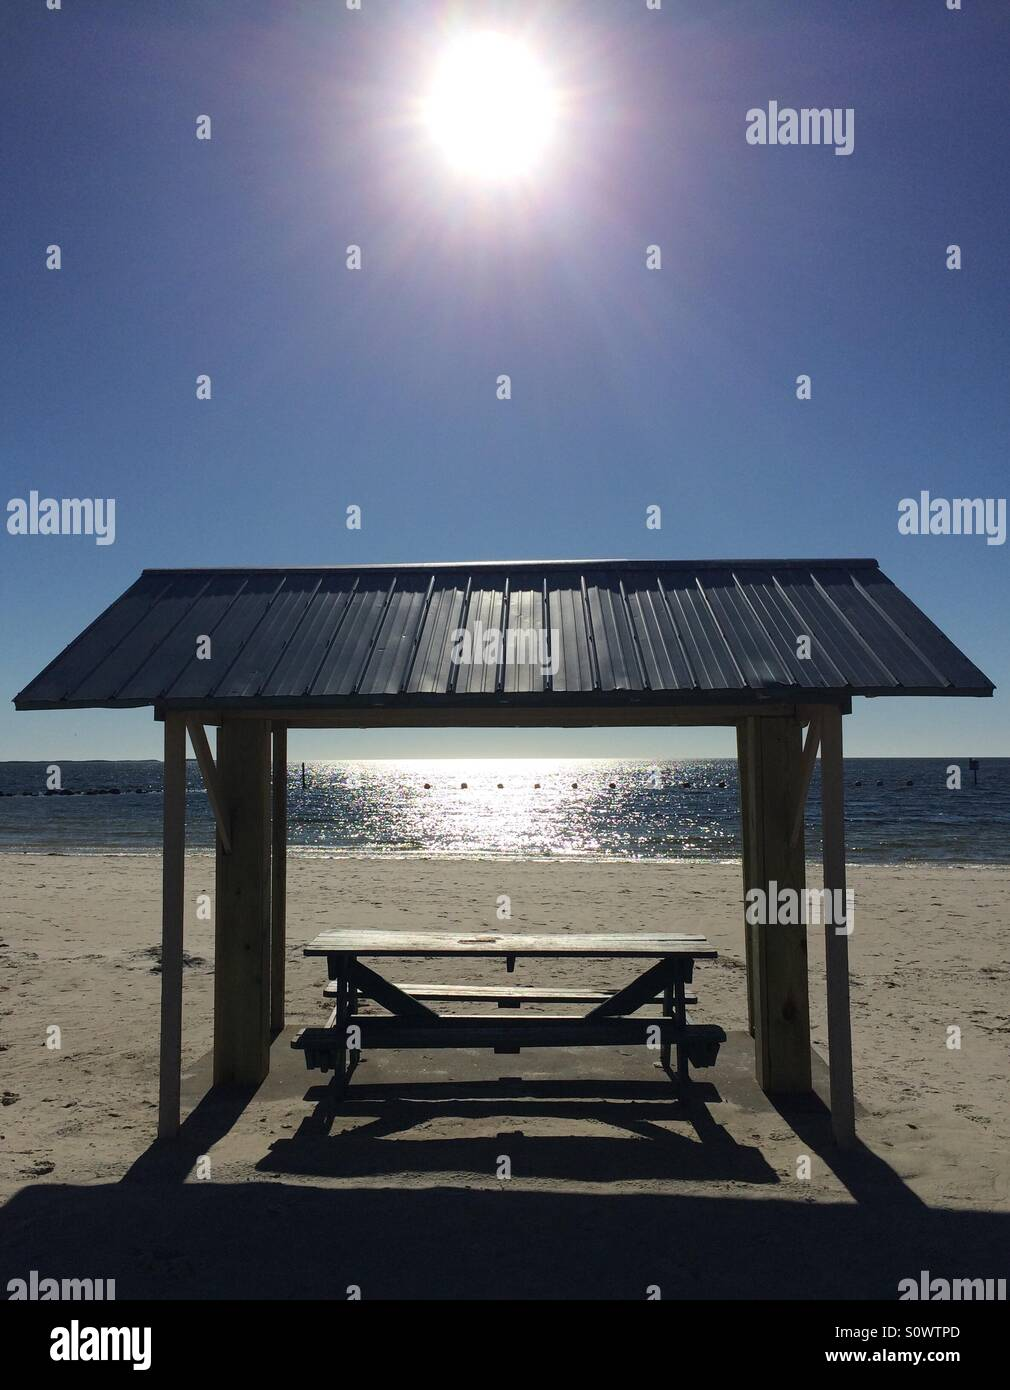 Picnic table at the beach - Stock Image